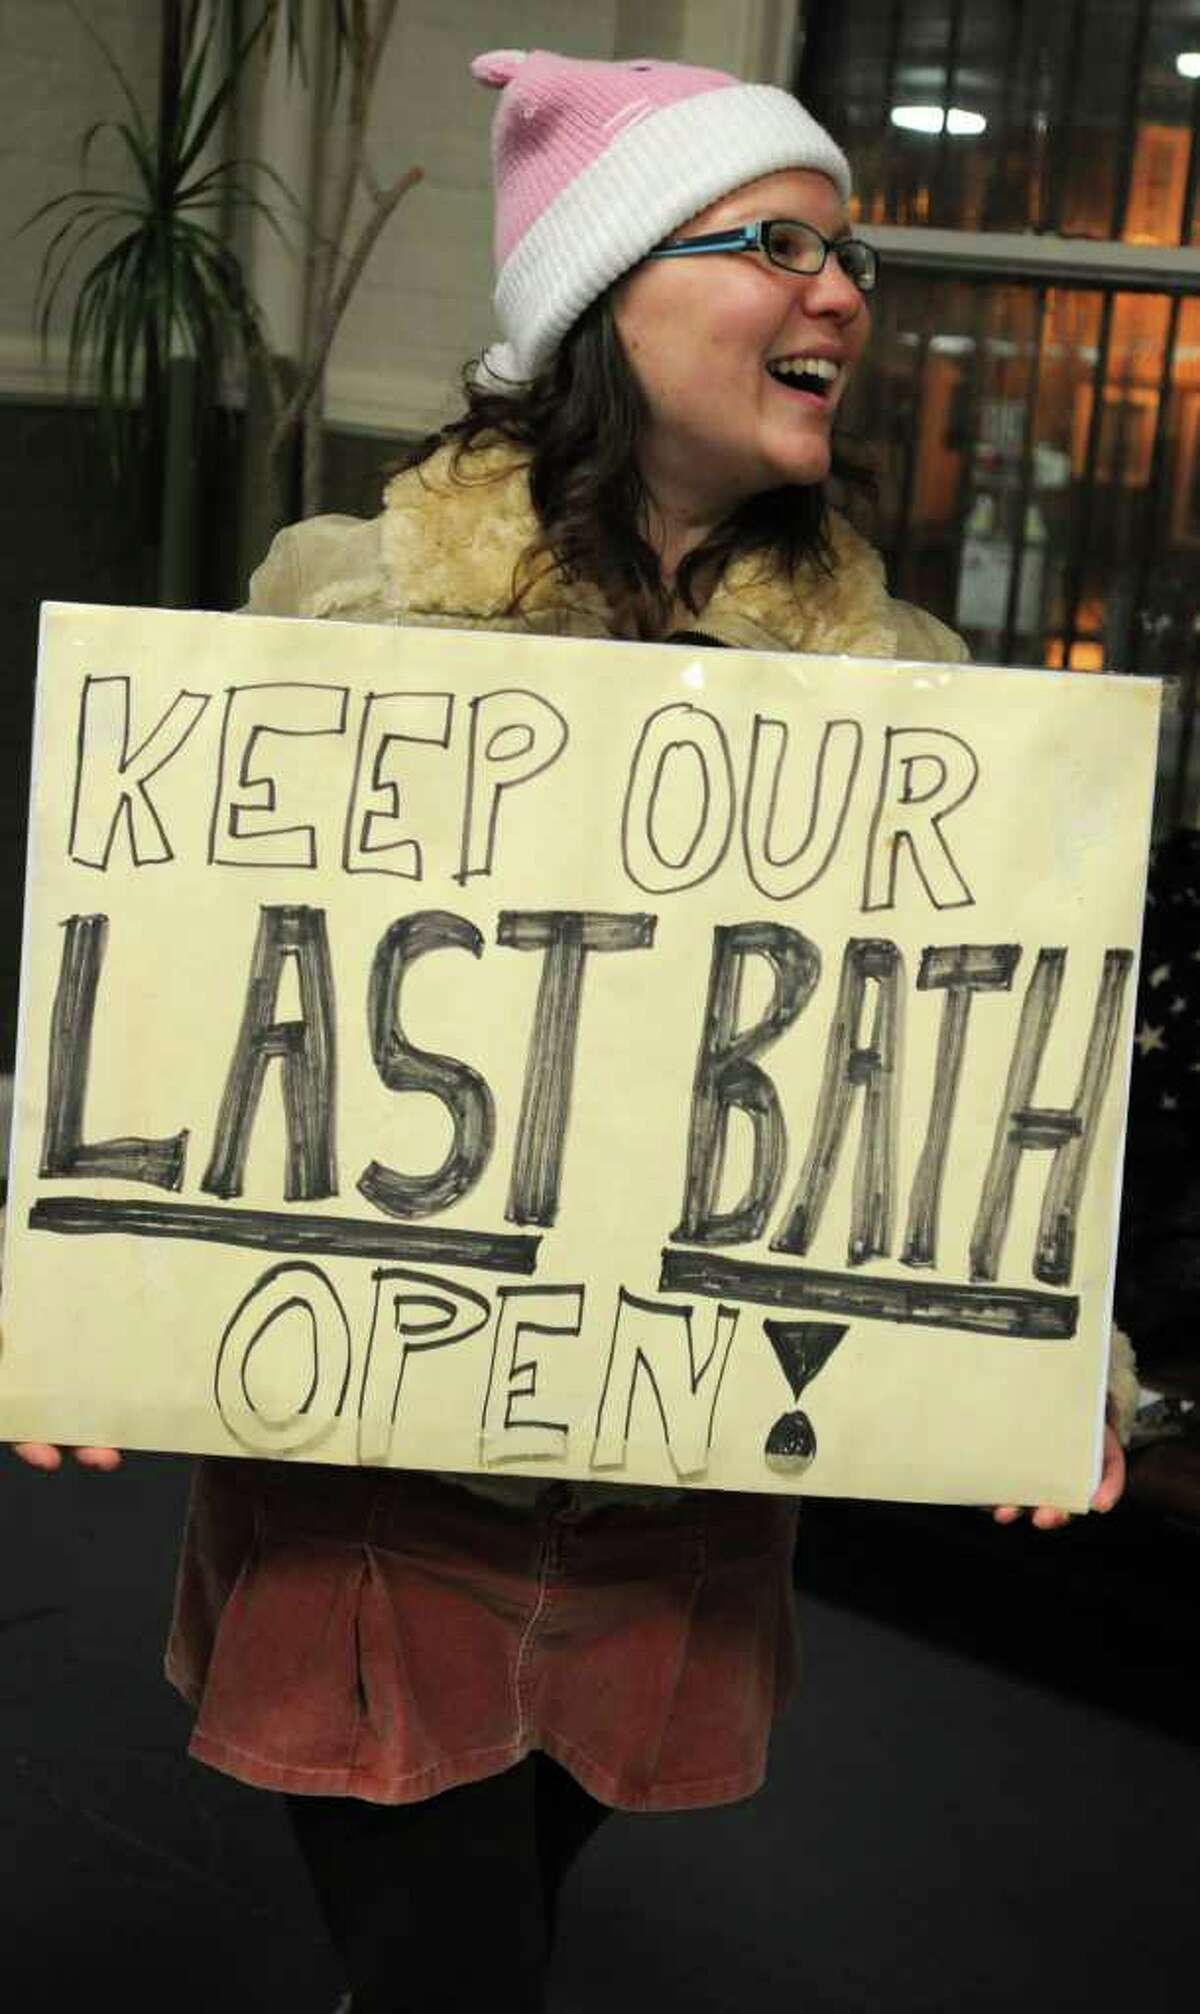 Elisabeth Mason ), originally from Albany, now lives in Maryland, holds a sigh as South End residents rally to save Public Bath No. 2 in Albany, NY on November 8, 2010. The public bath is slated for closure under Mayor Jerry Jennings proposed 2011 budget. (Lori Van Buren / Times Union)